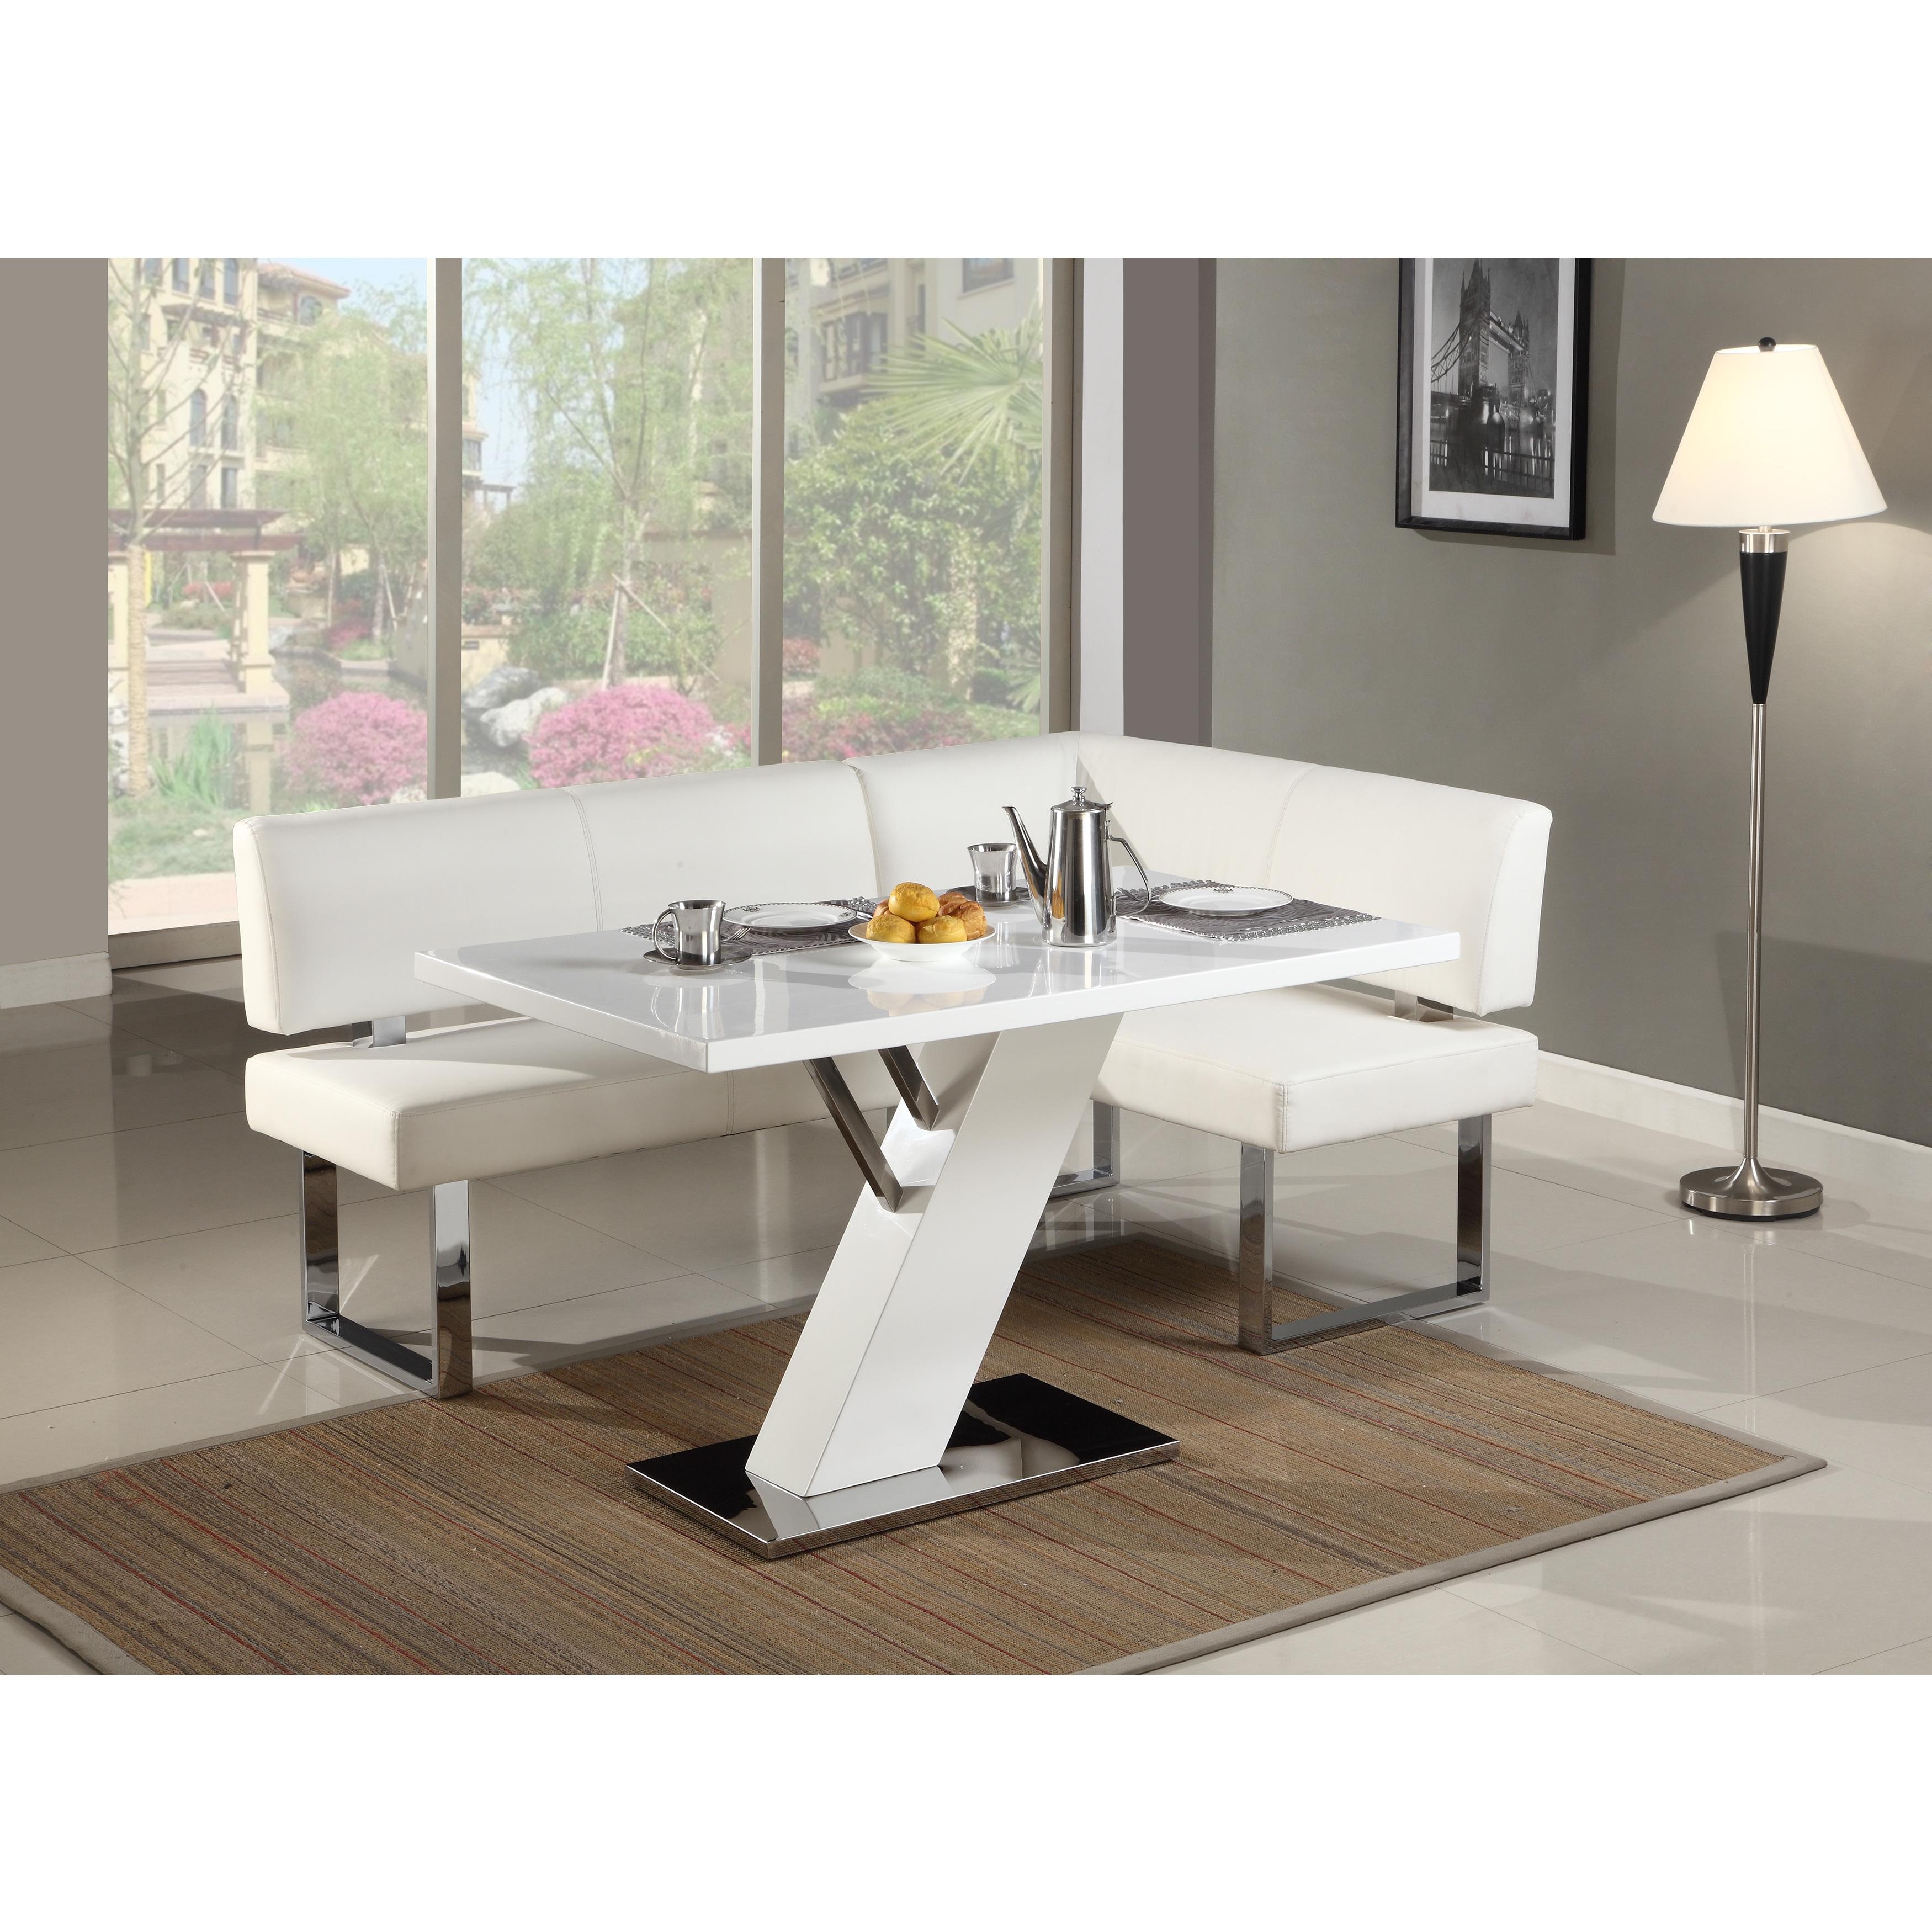 Shop christopher knight home leah gloss whitechrome dining table shop christopher knight home leah gloss whitechrome dining table white free shipping today overstock 9913926 watchthetrailerfo